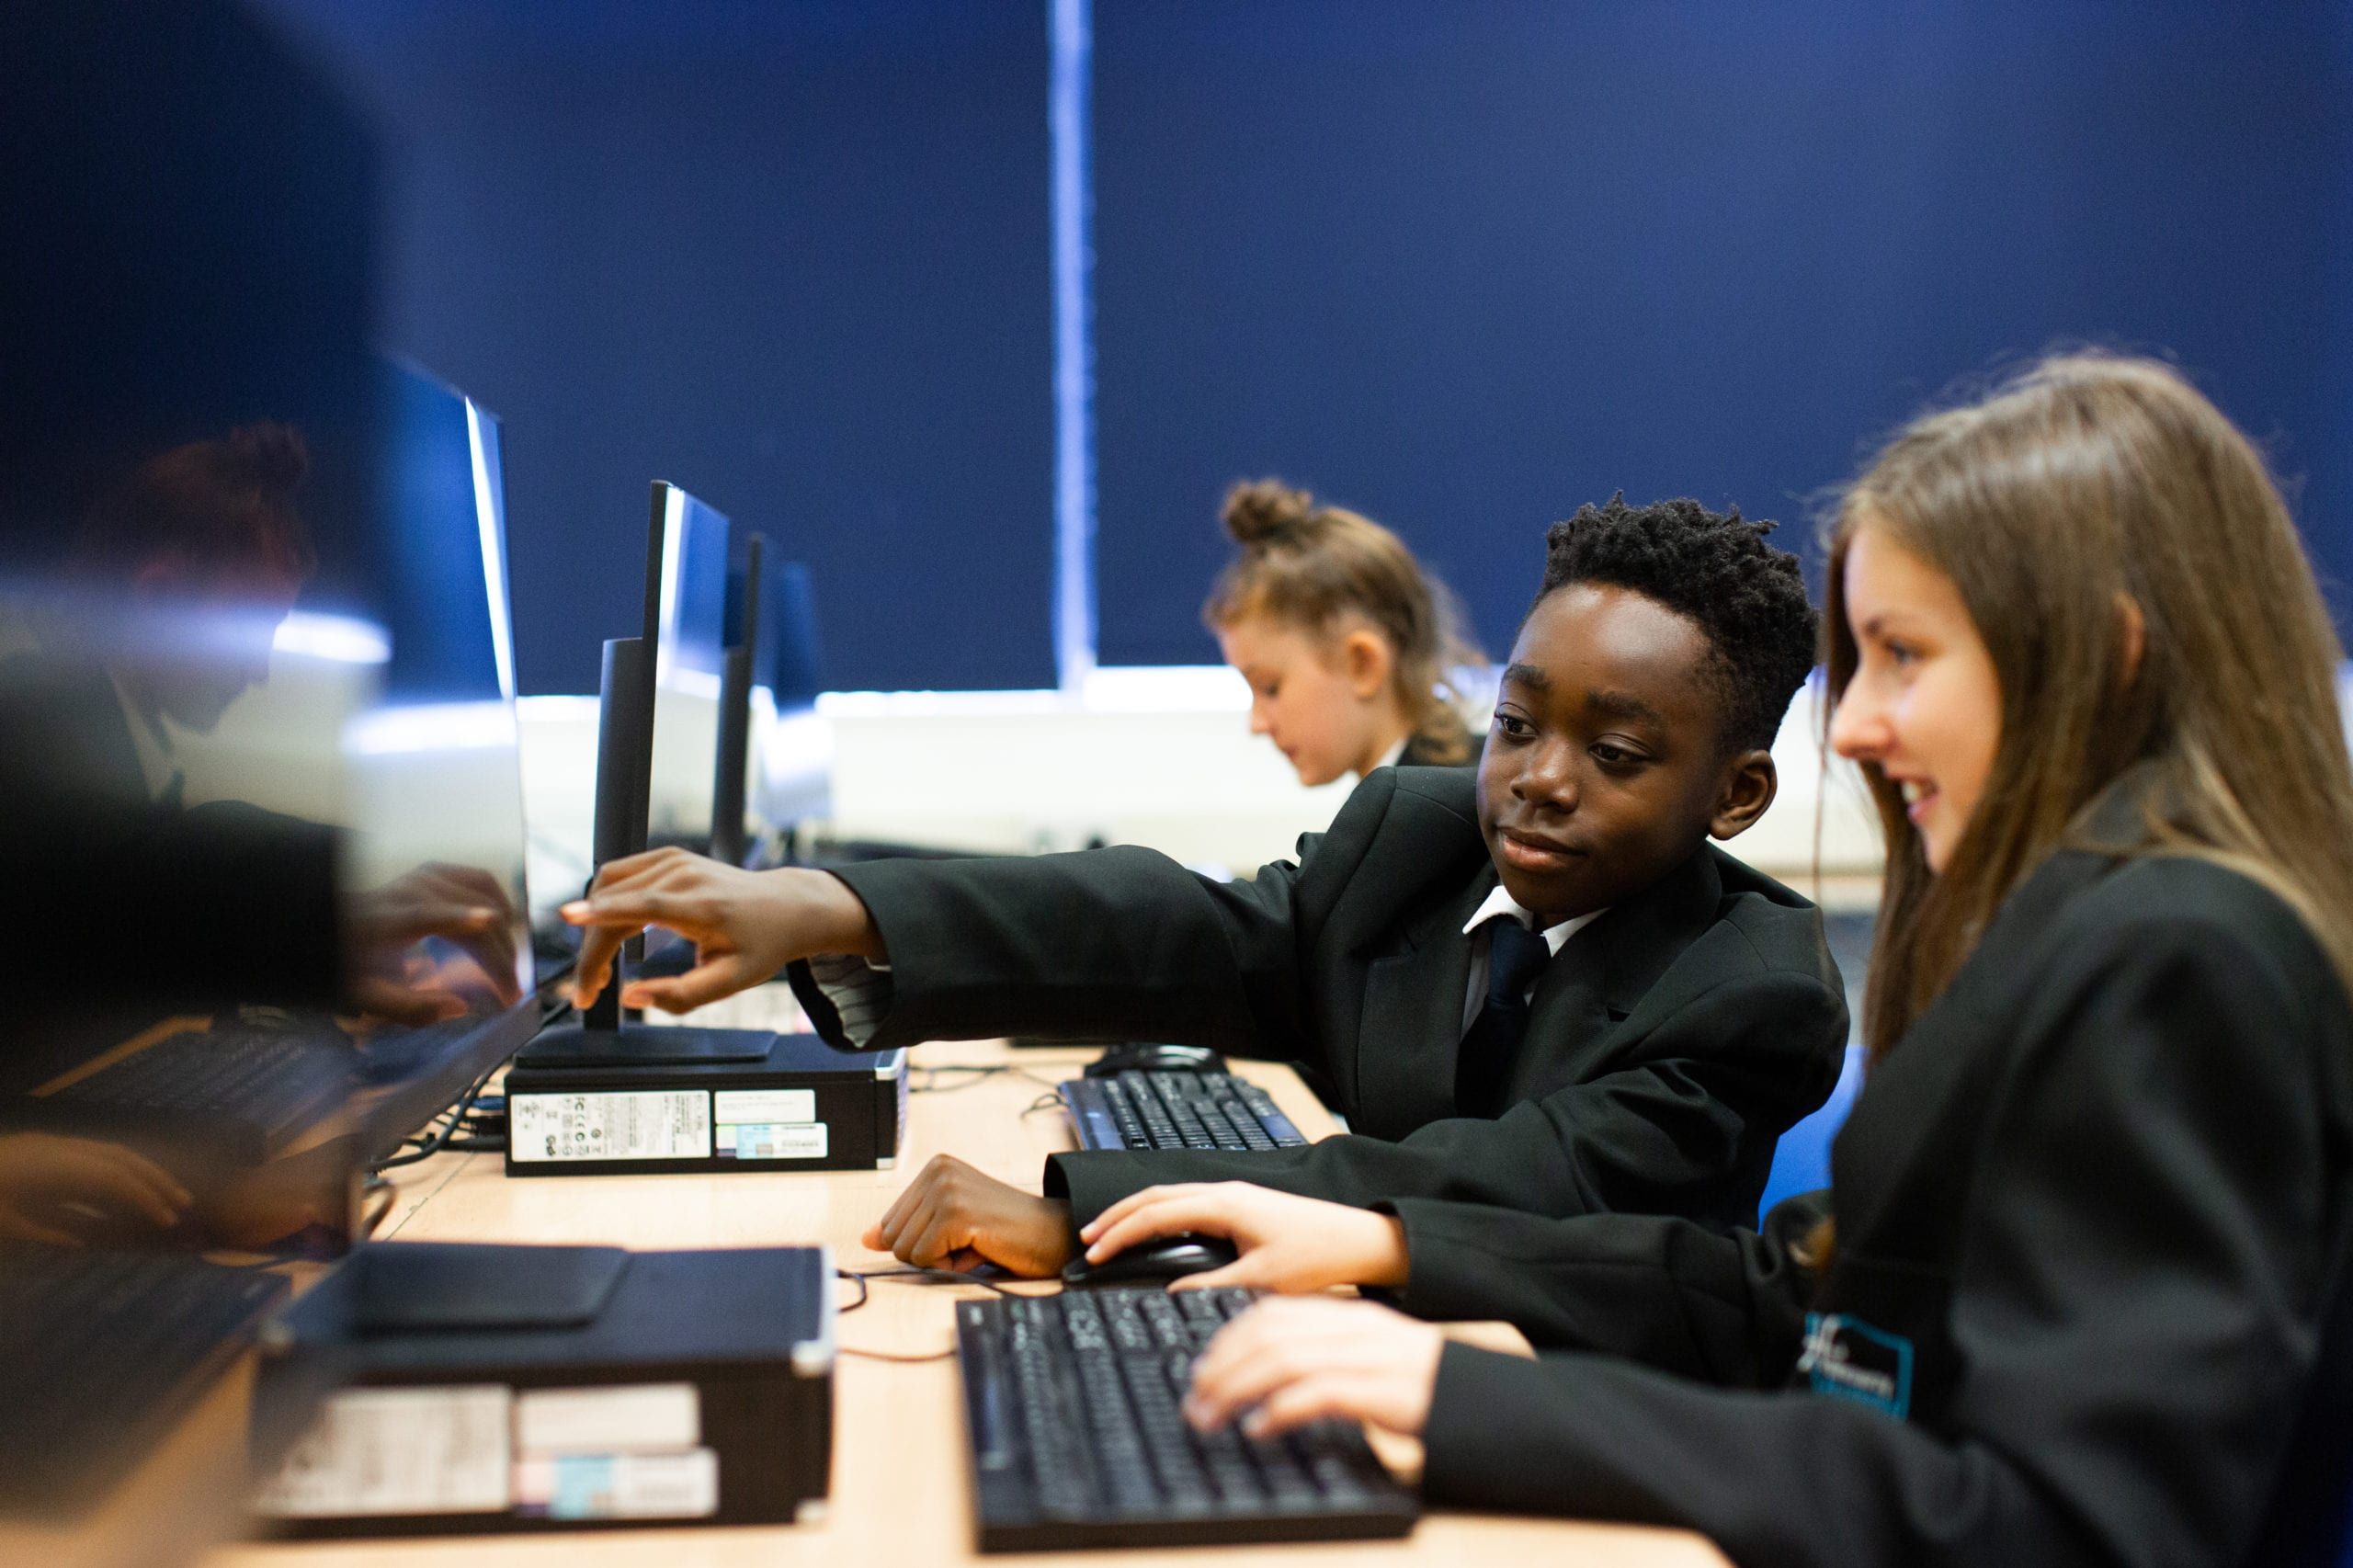 Pupils using a computer supporting each other